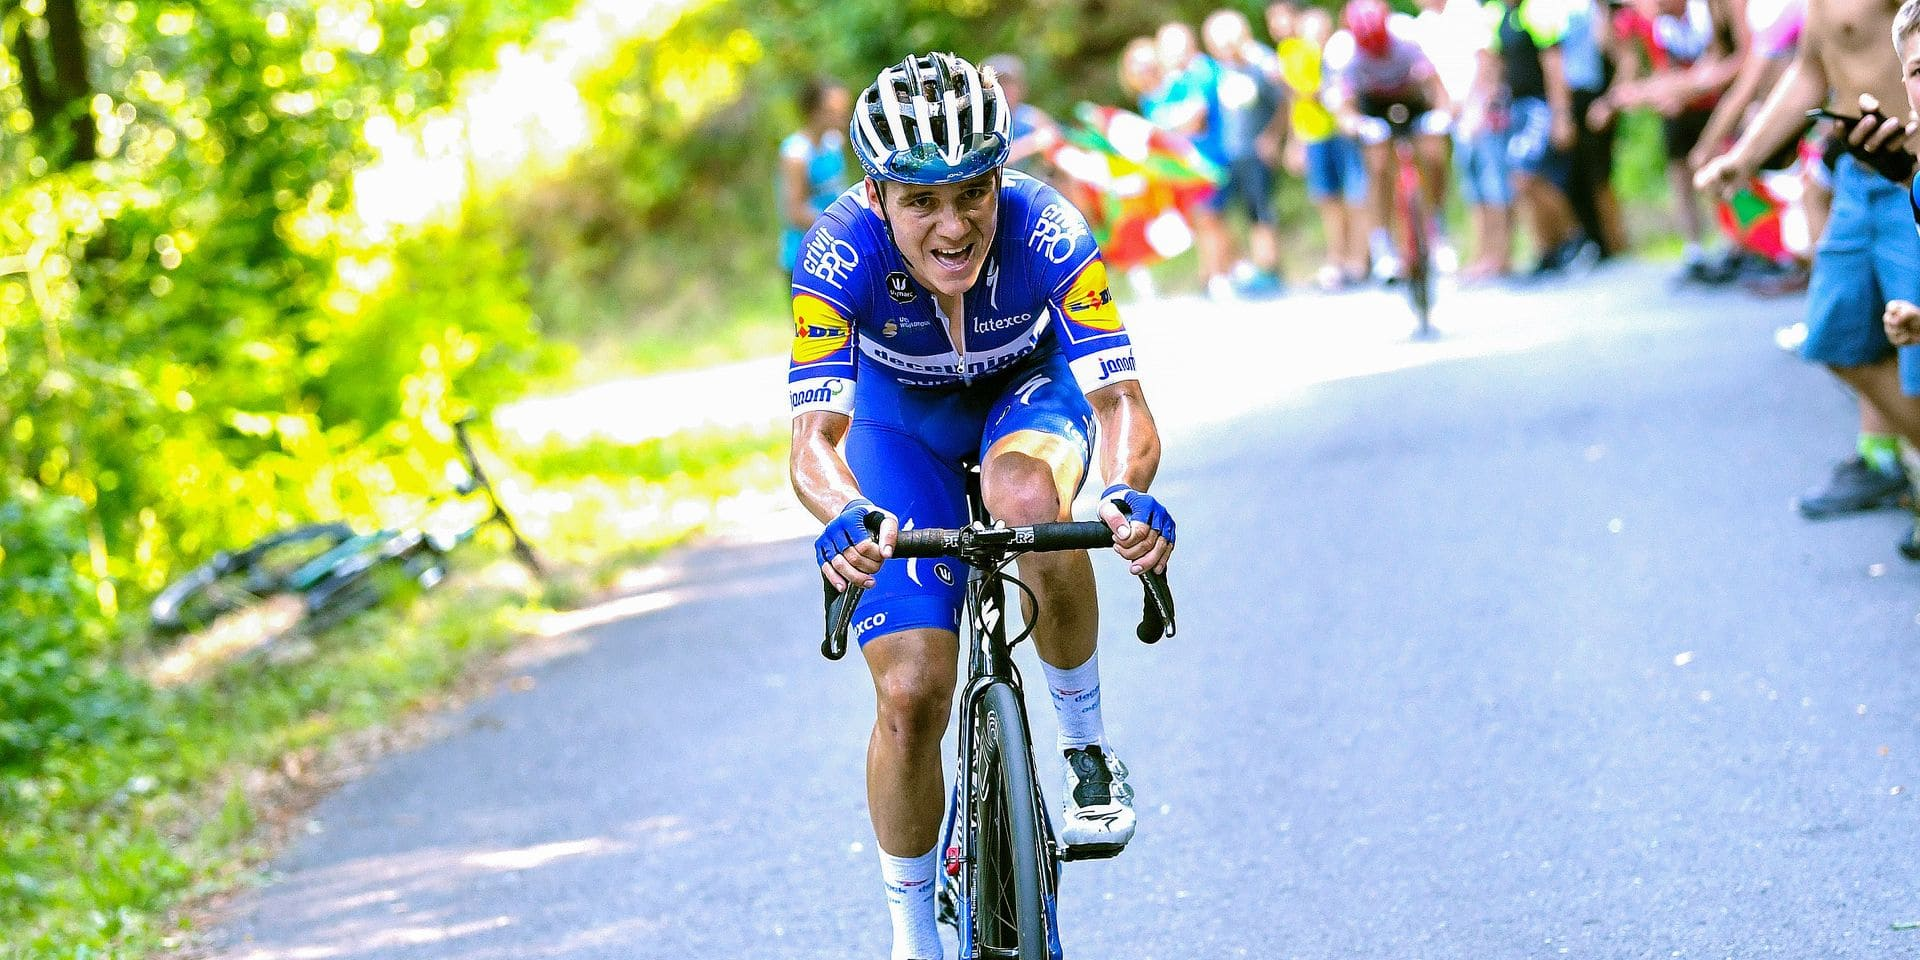 Clasica Ciclista San Sebastian 2019 - 39th Edition - San Sebastian - San Sebastian 227,3 km - 03/08/2019 - Remco Evenepoel (BEL - Deceuninck - Quick Step) - photo Luis Angel Gomez/BettiniPhoto©2019 ! only BELGIUM !